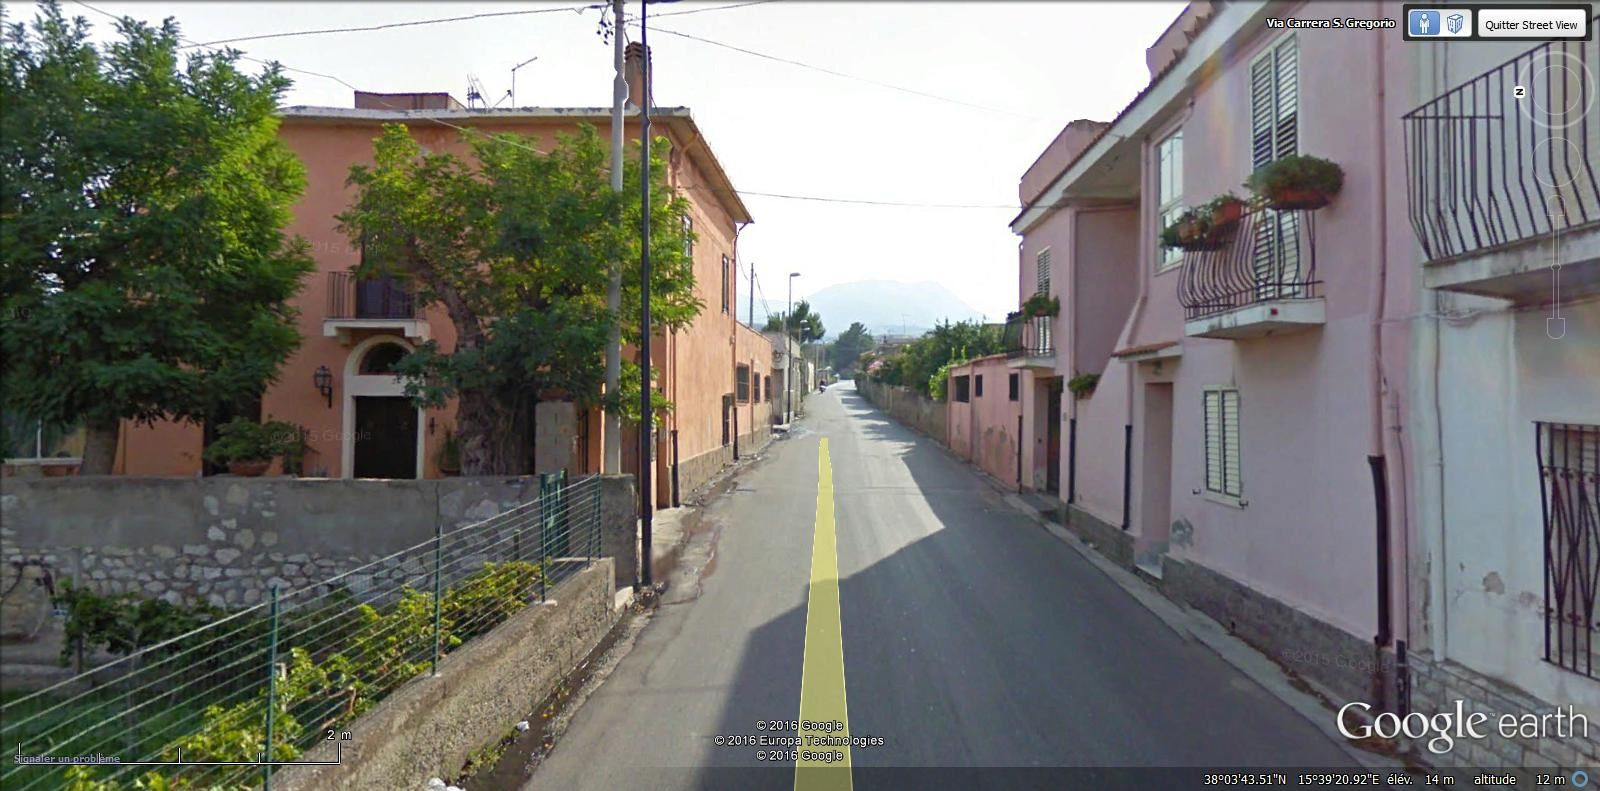 via Carrera San Gegorio